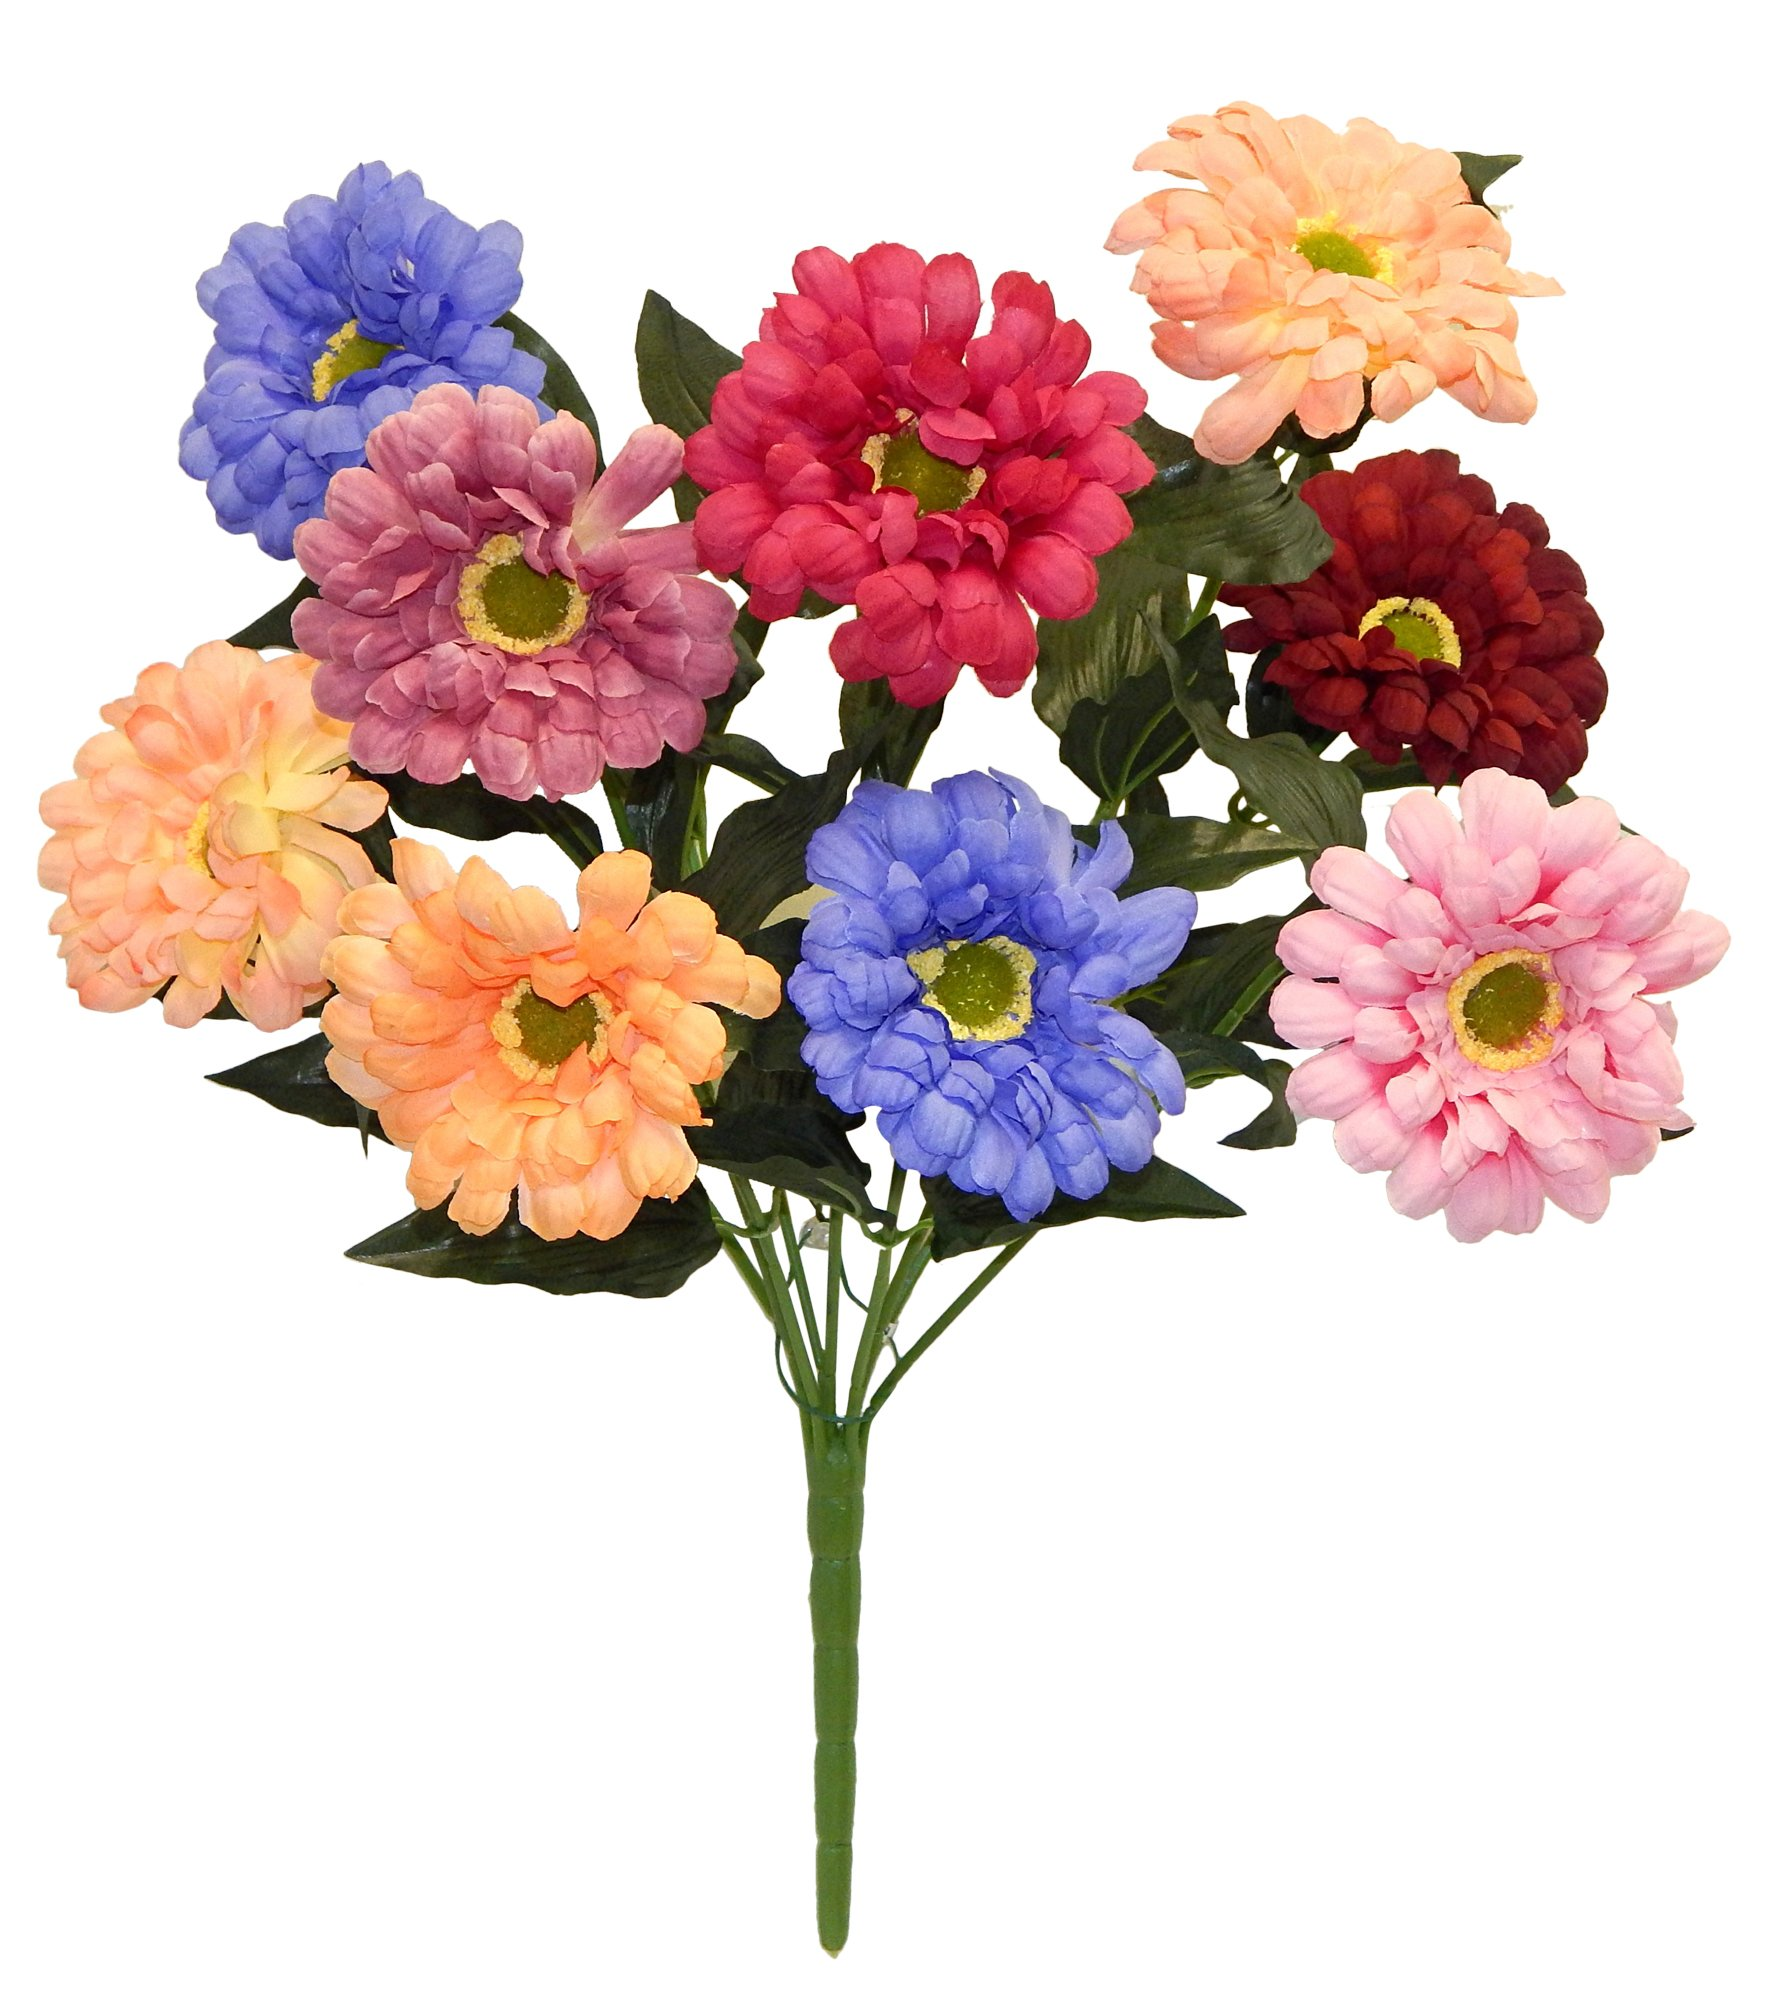 23-Multi-Color-Zinnia-Bush-Artificial-Silk-Wedding-Craft-Flowers-Home-Party-Decoration-9-Zinnias-PinkPeachBlue